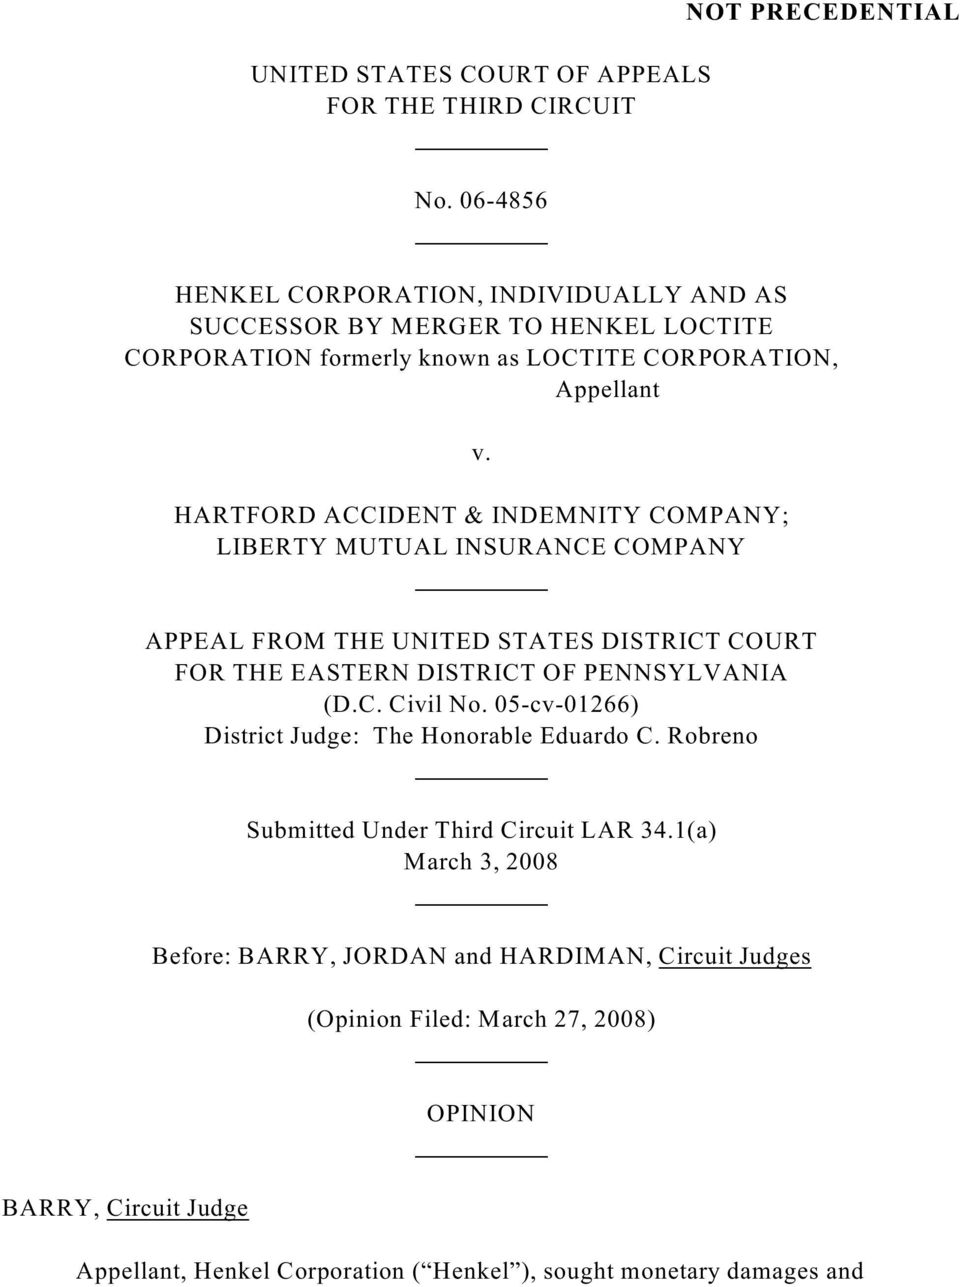 HARTFORD ACCIDENT & INDEMNITY COMPANY; LIBERTY MUTUAL INSURANCE COMPANY APPEAL FROM THE UNITED STATES DISTRICT COURT FOR THE EASTERN DISTRICT OF PENNSYLVANIA (D.C. Civil No.